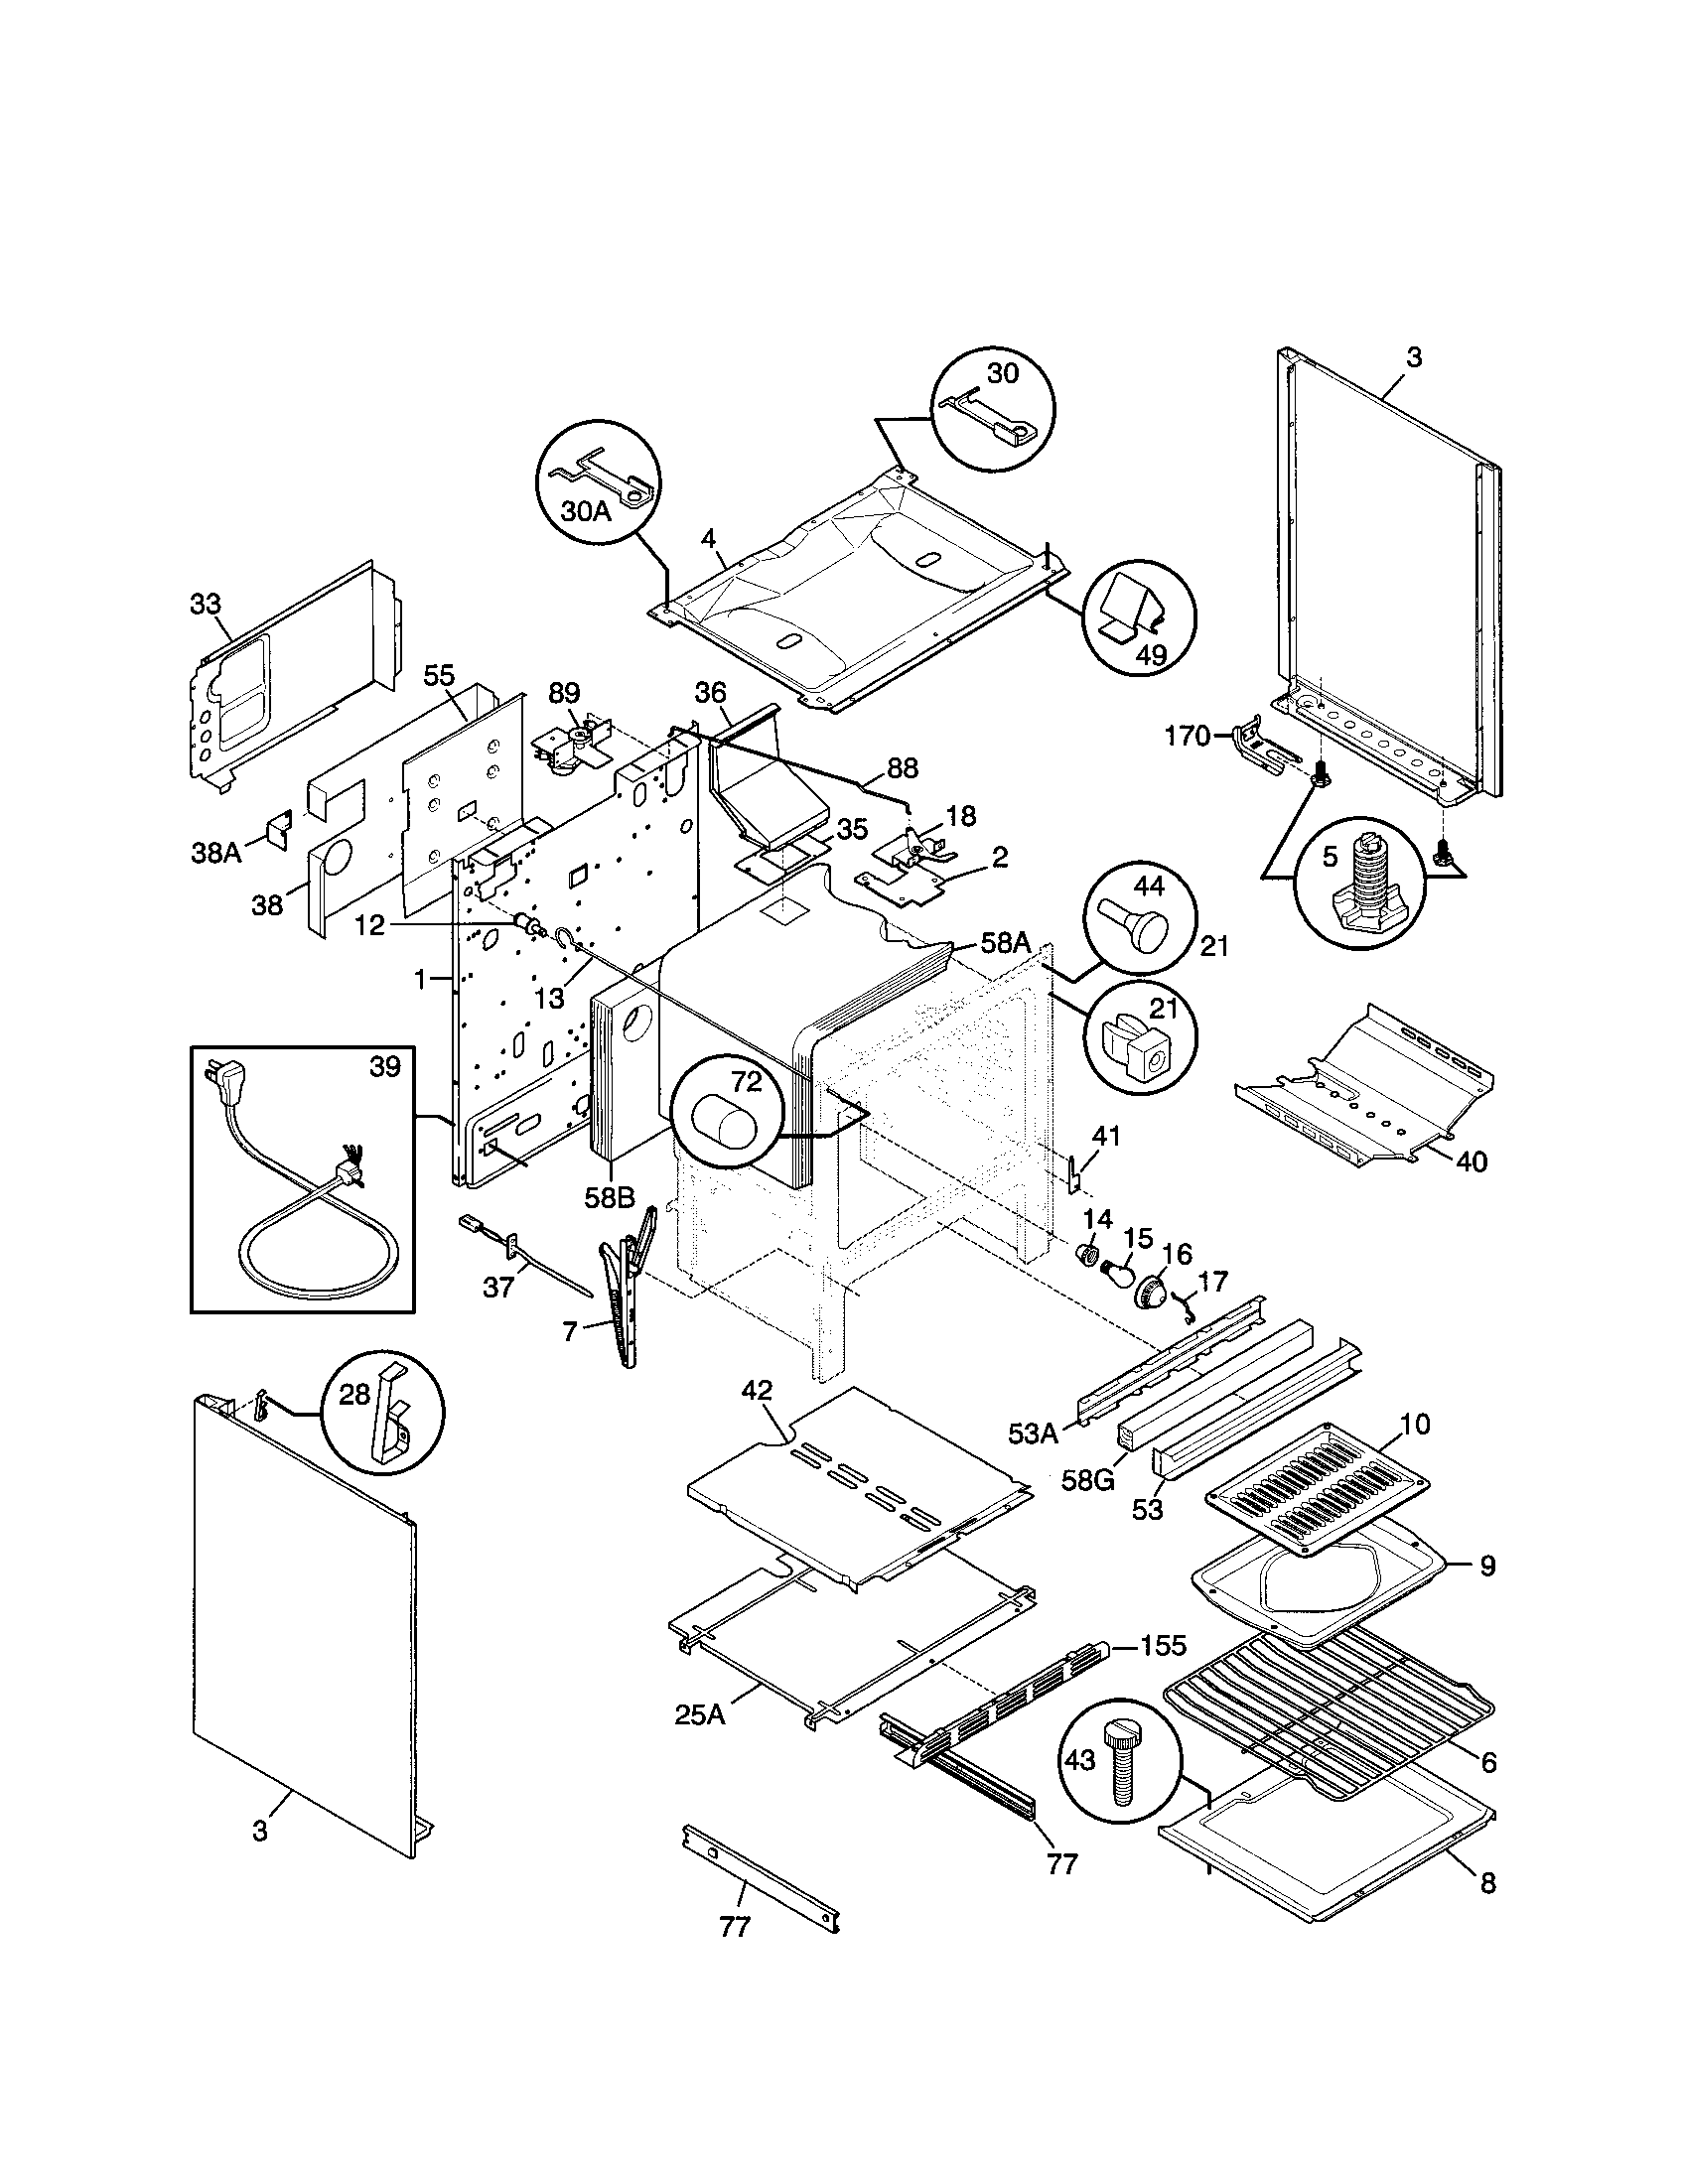 frigidaire gallery dishwasher parts diagram 1998 ford ranger 4x4 wiring fgf379wecs range timer - stove clocks and appliance timers